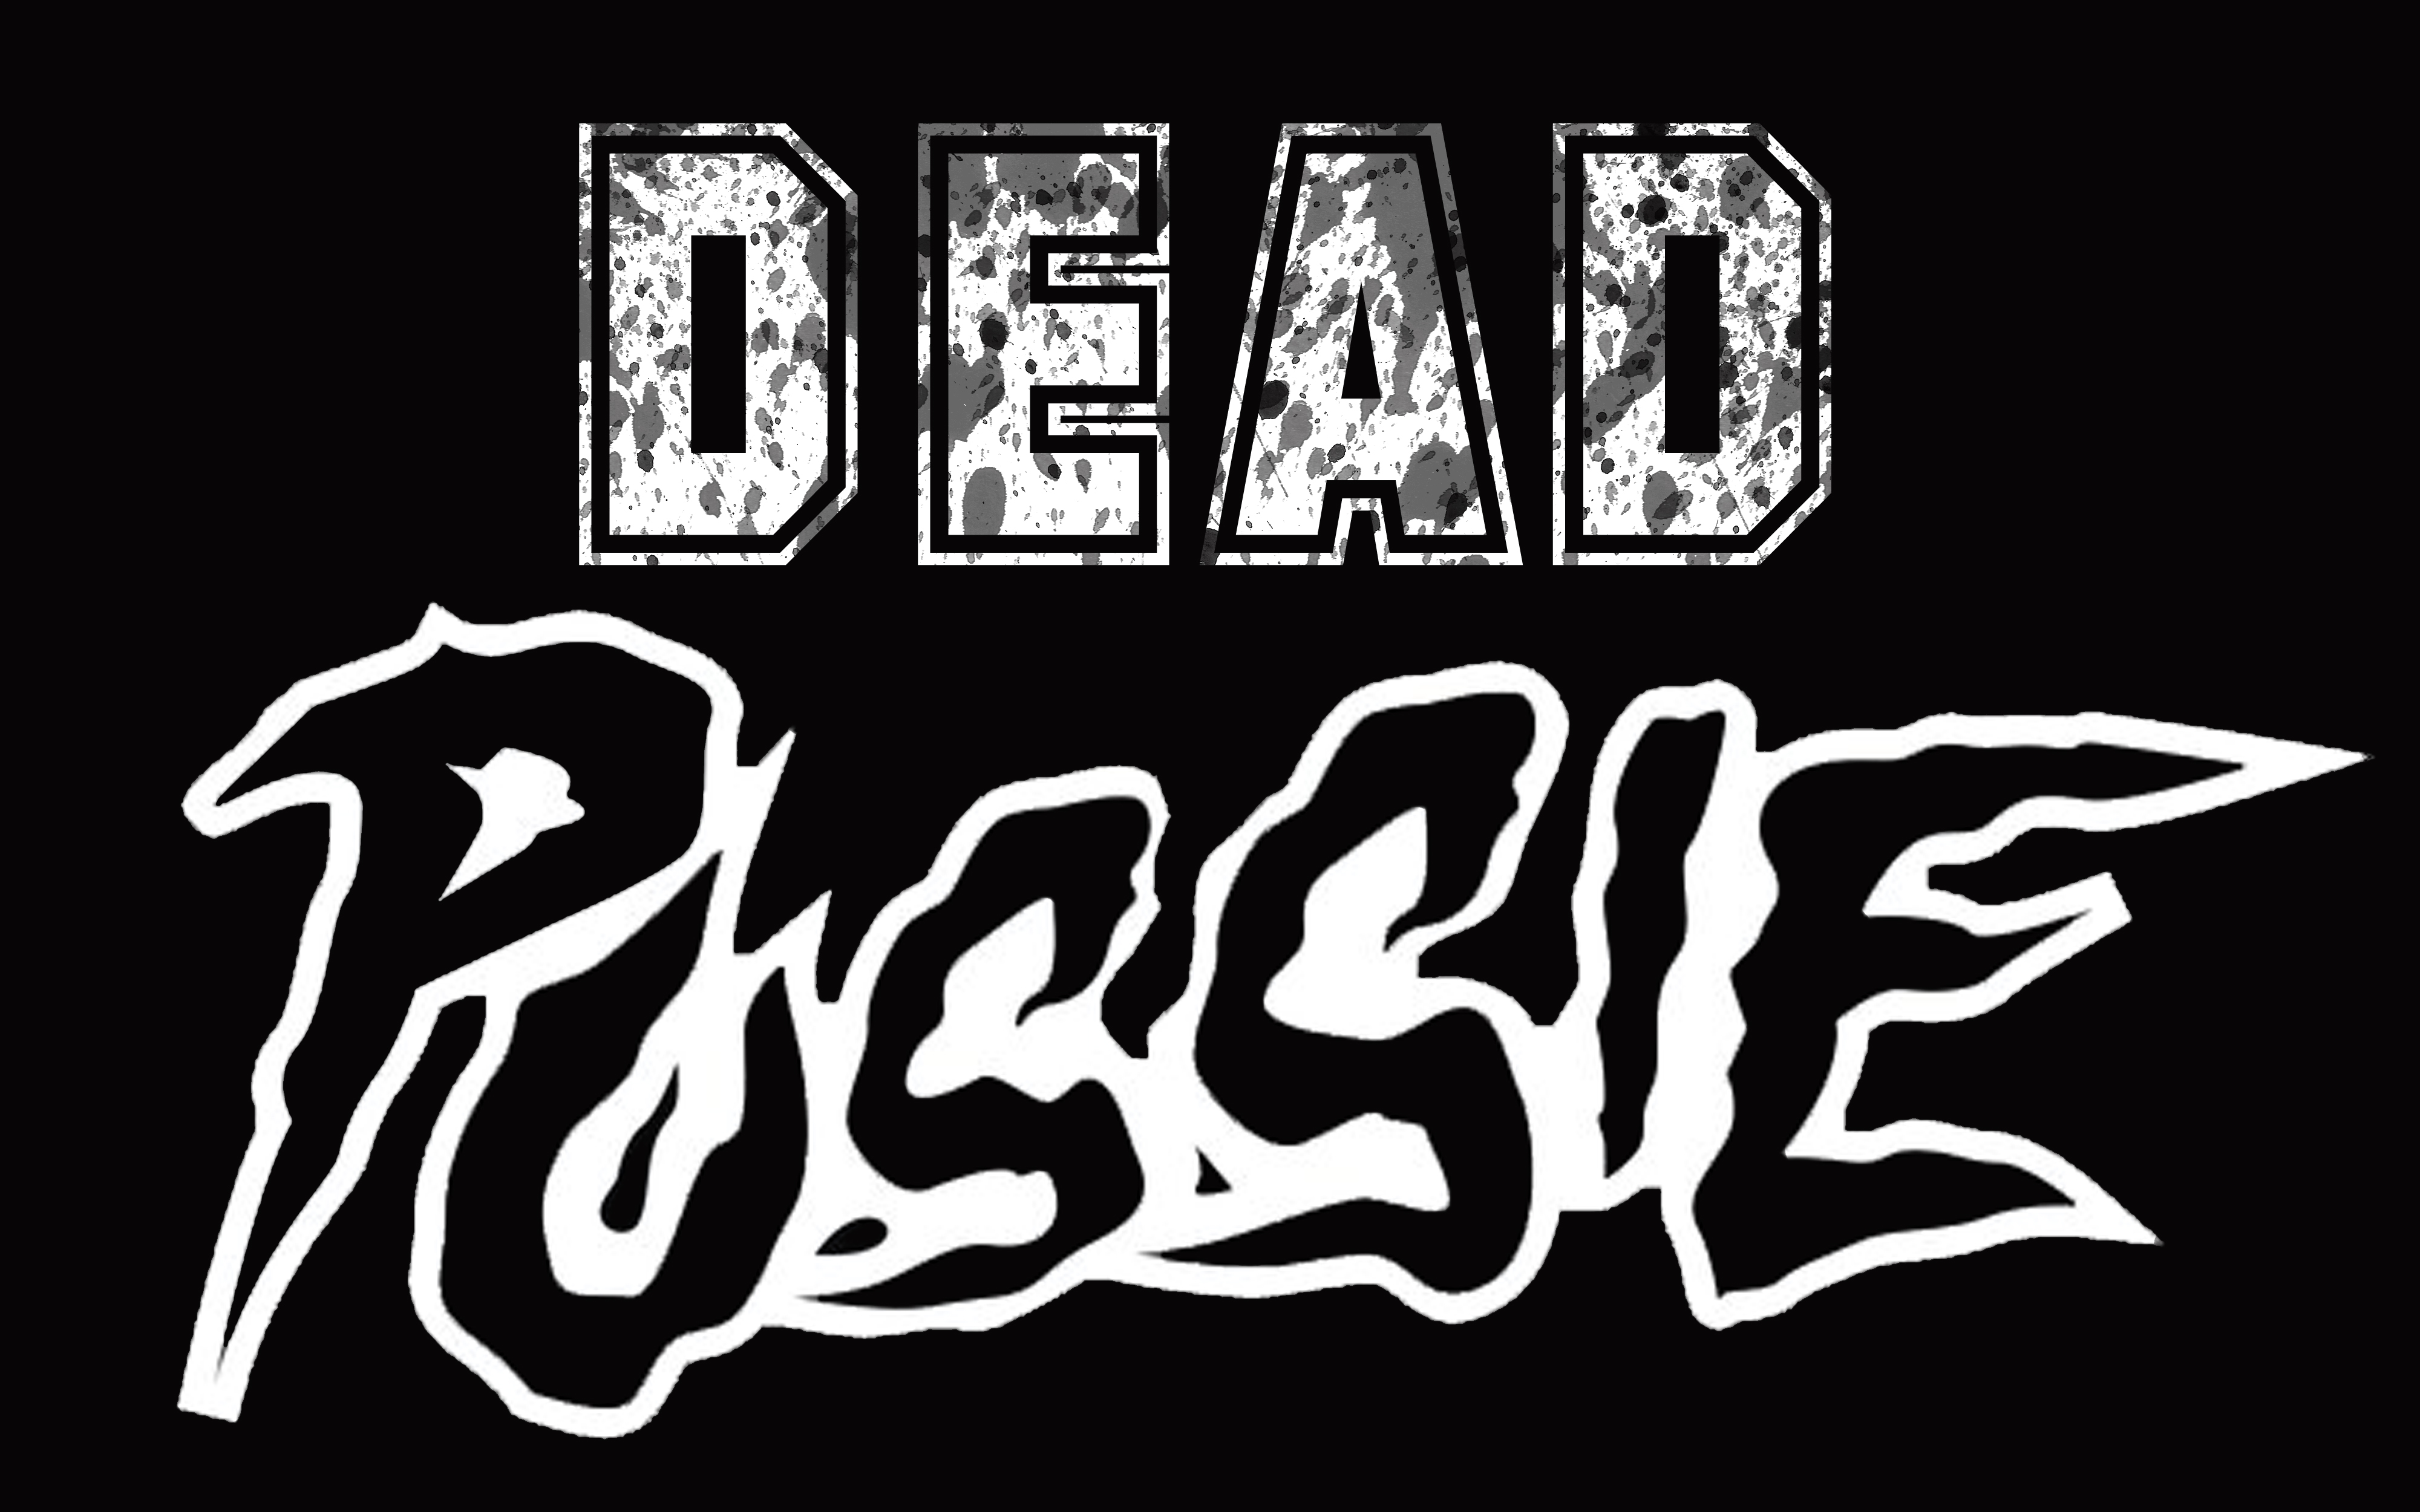 Dead Pussie Clothing